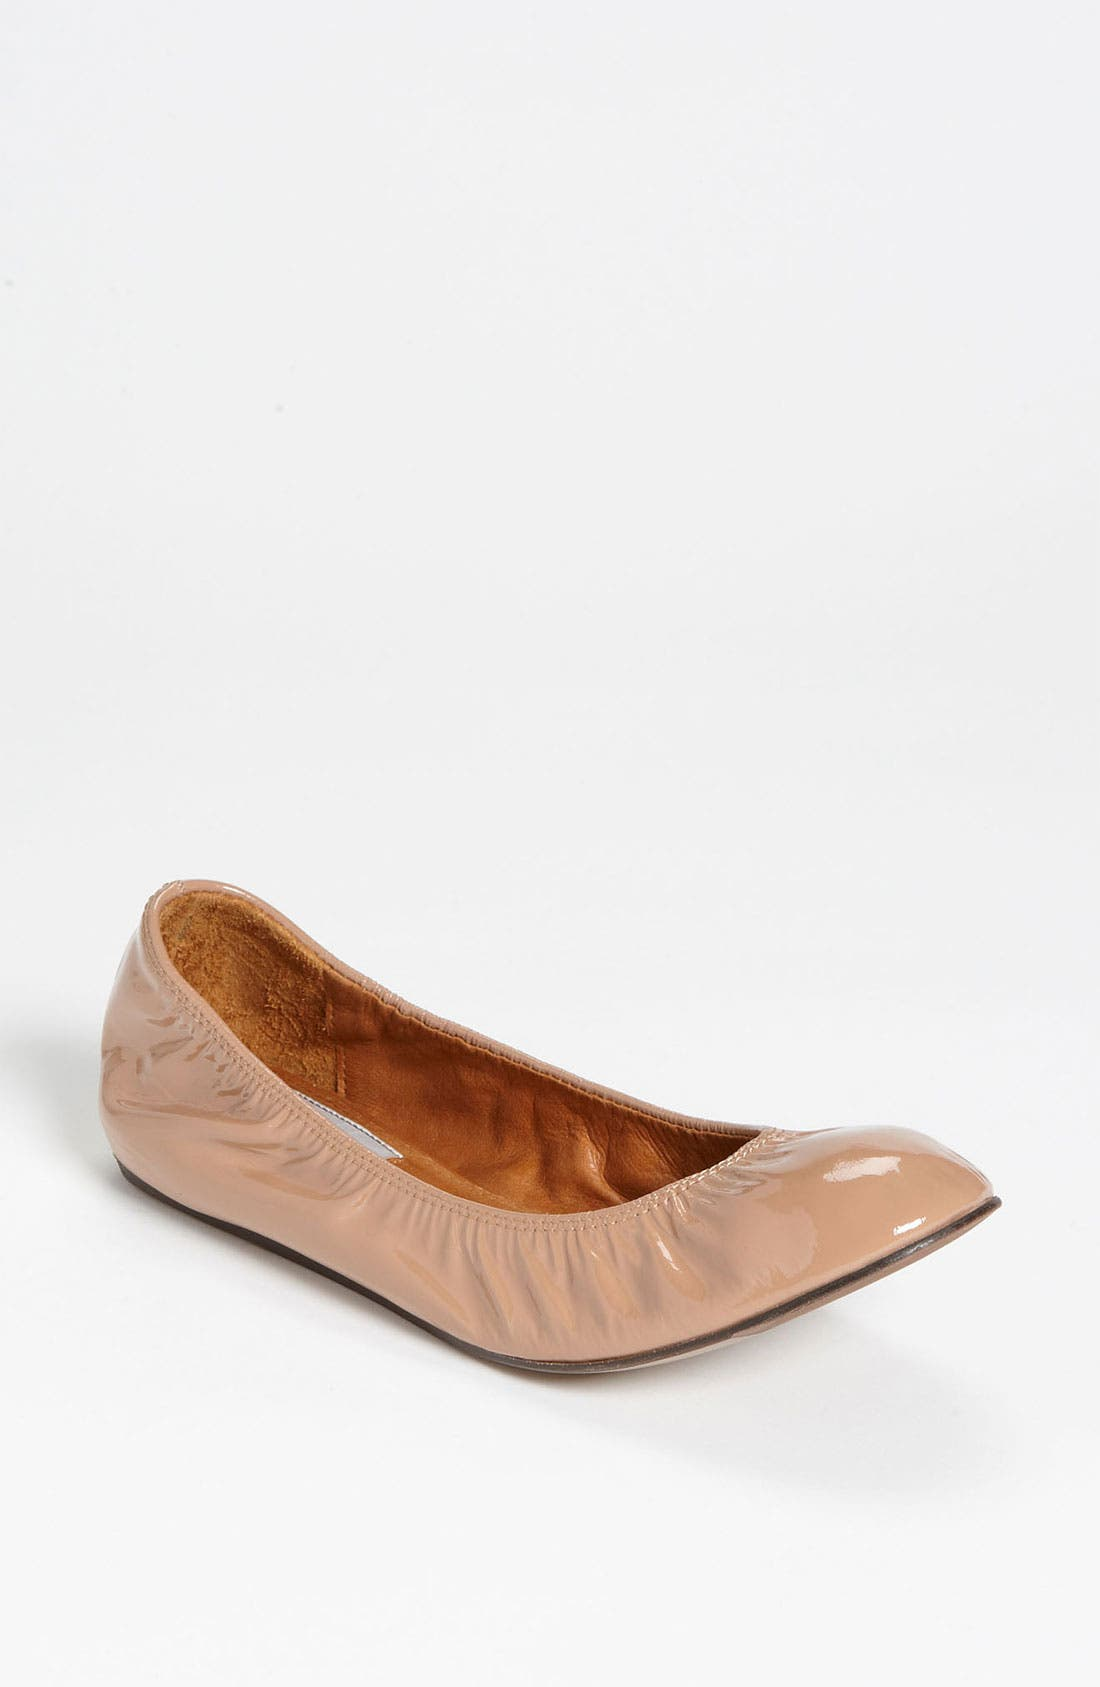 Alternate Image 1 Selected - Lanvin Patent Ballerina Flat